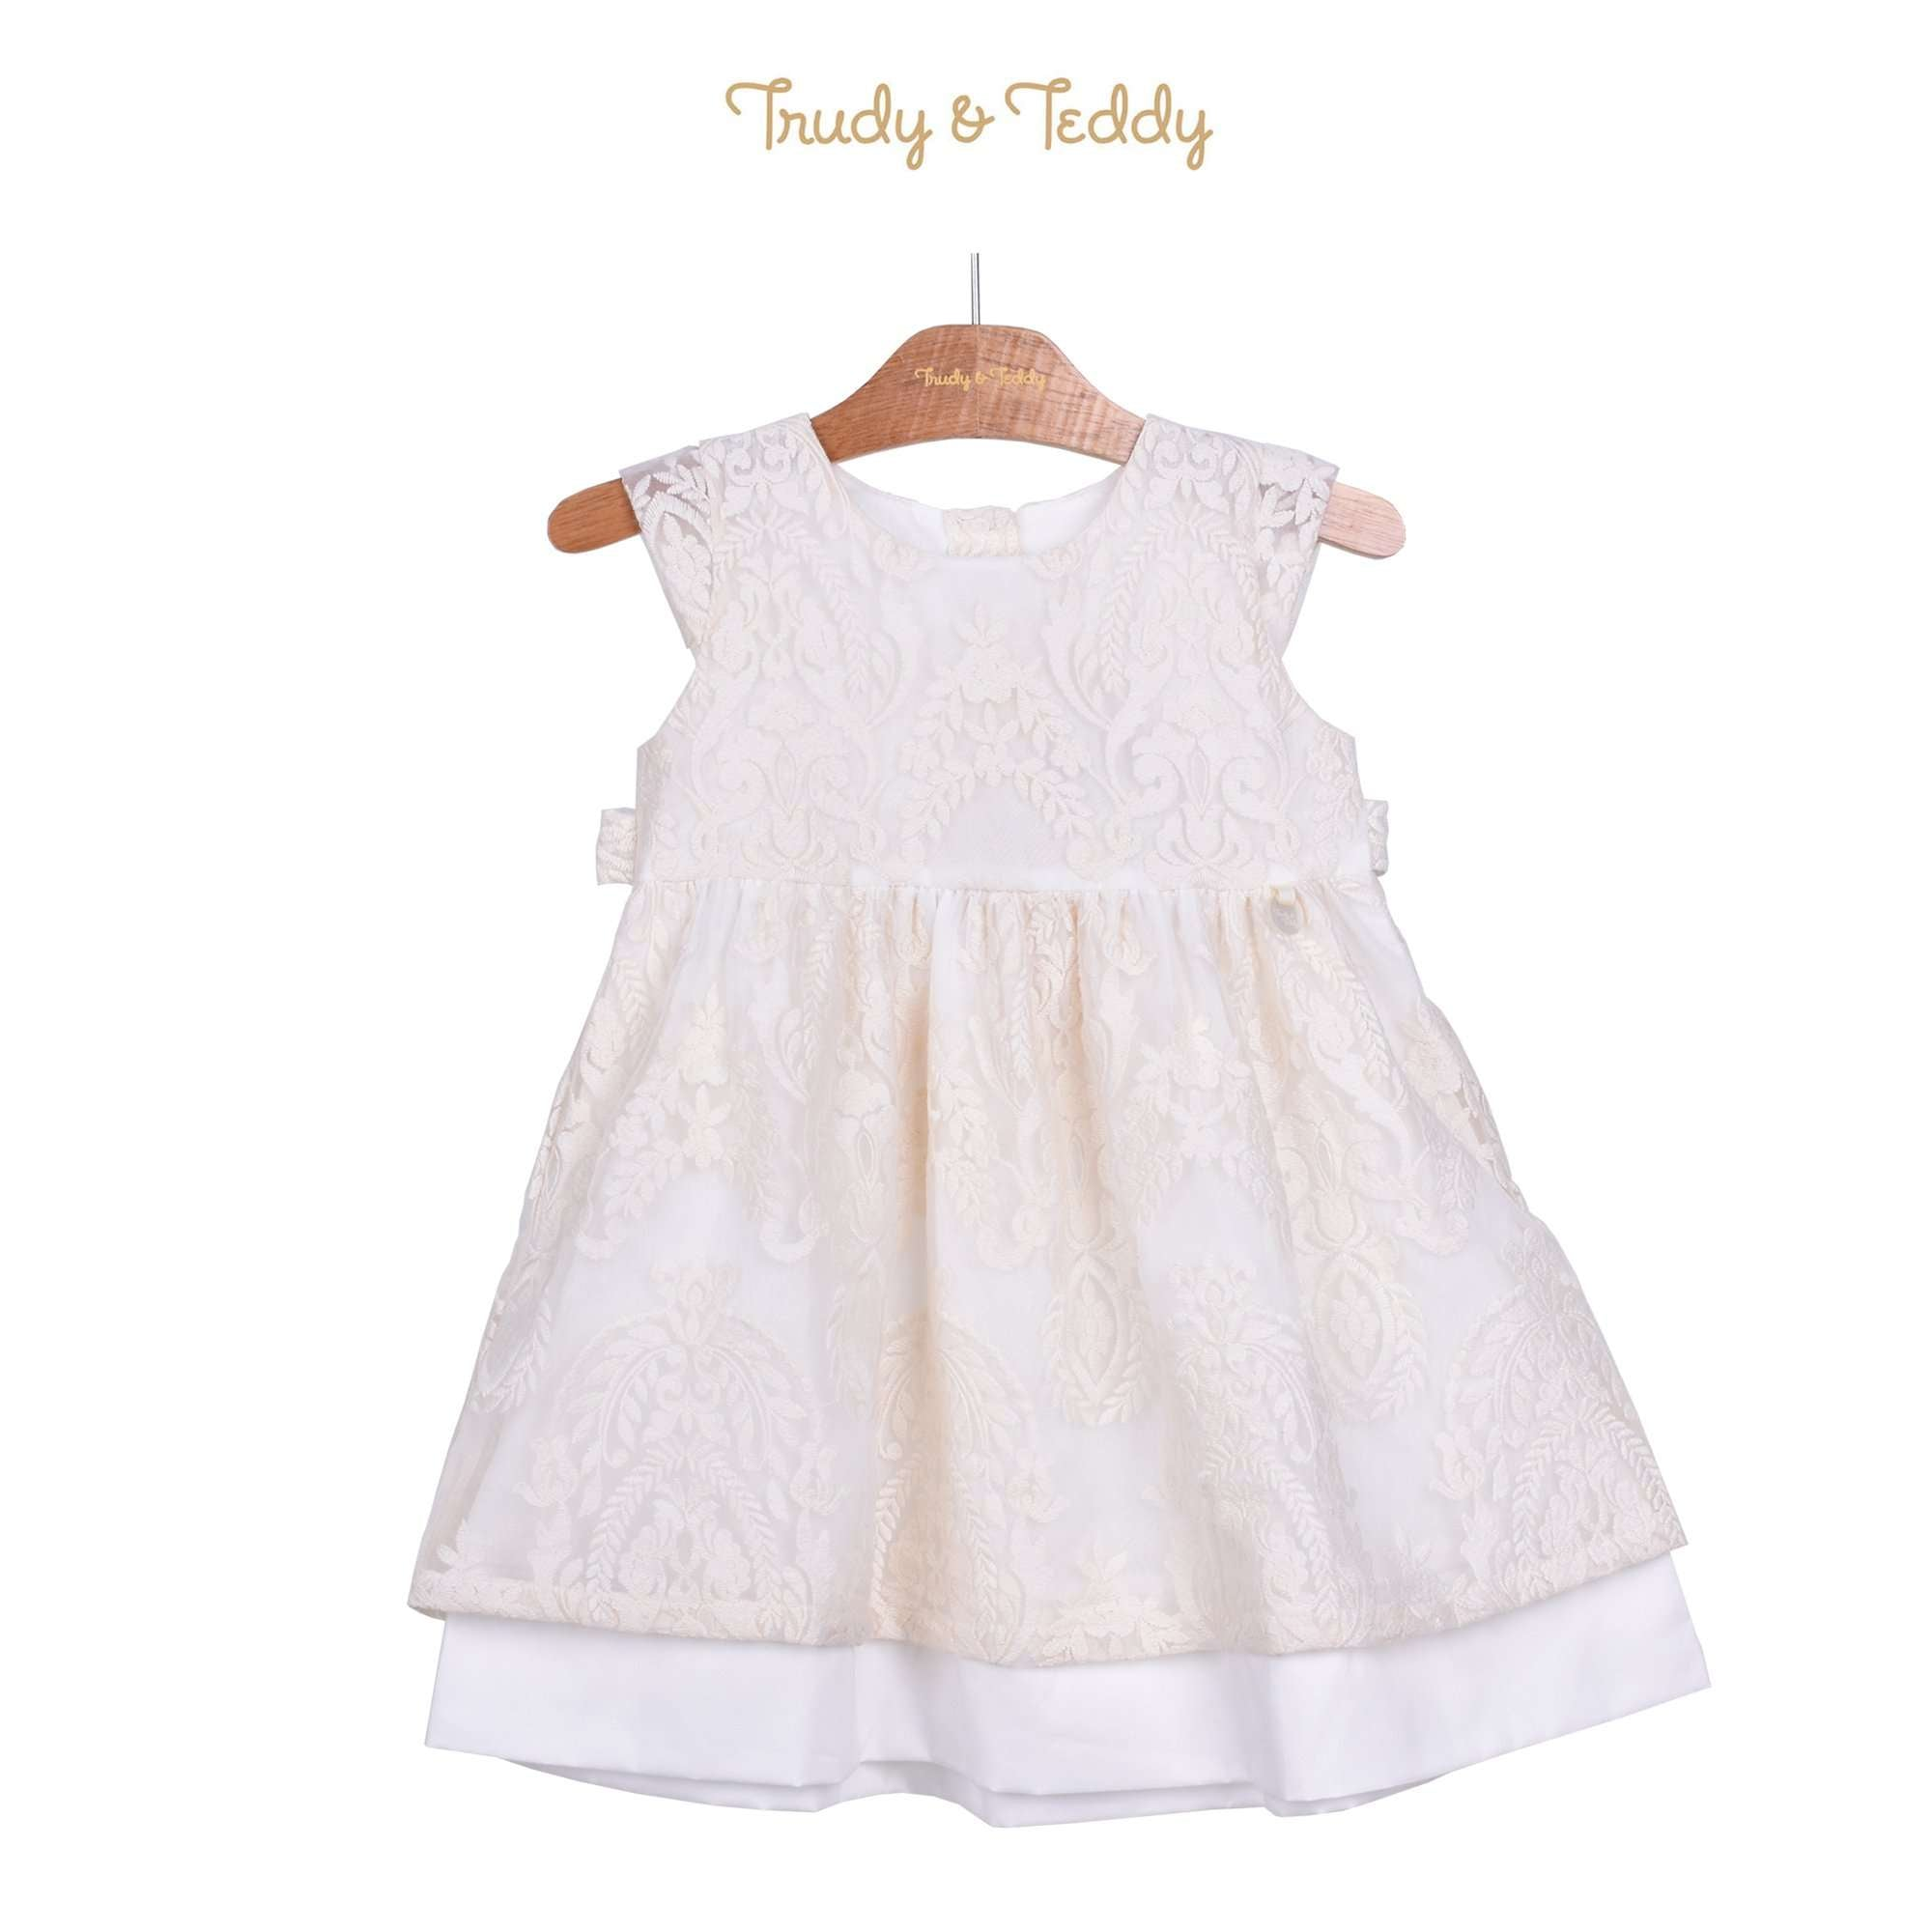 Trudy & Teddy Toddler Girl Short Sleeve Dress - Off White 815153-311 : Buy Trudy & Teddy online at CMG.MY